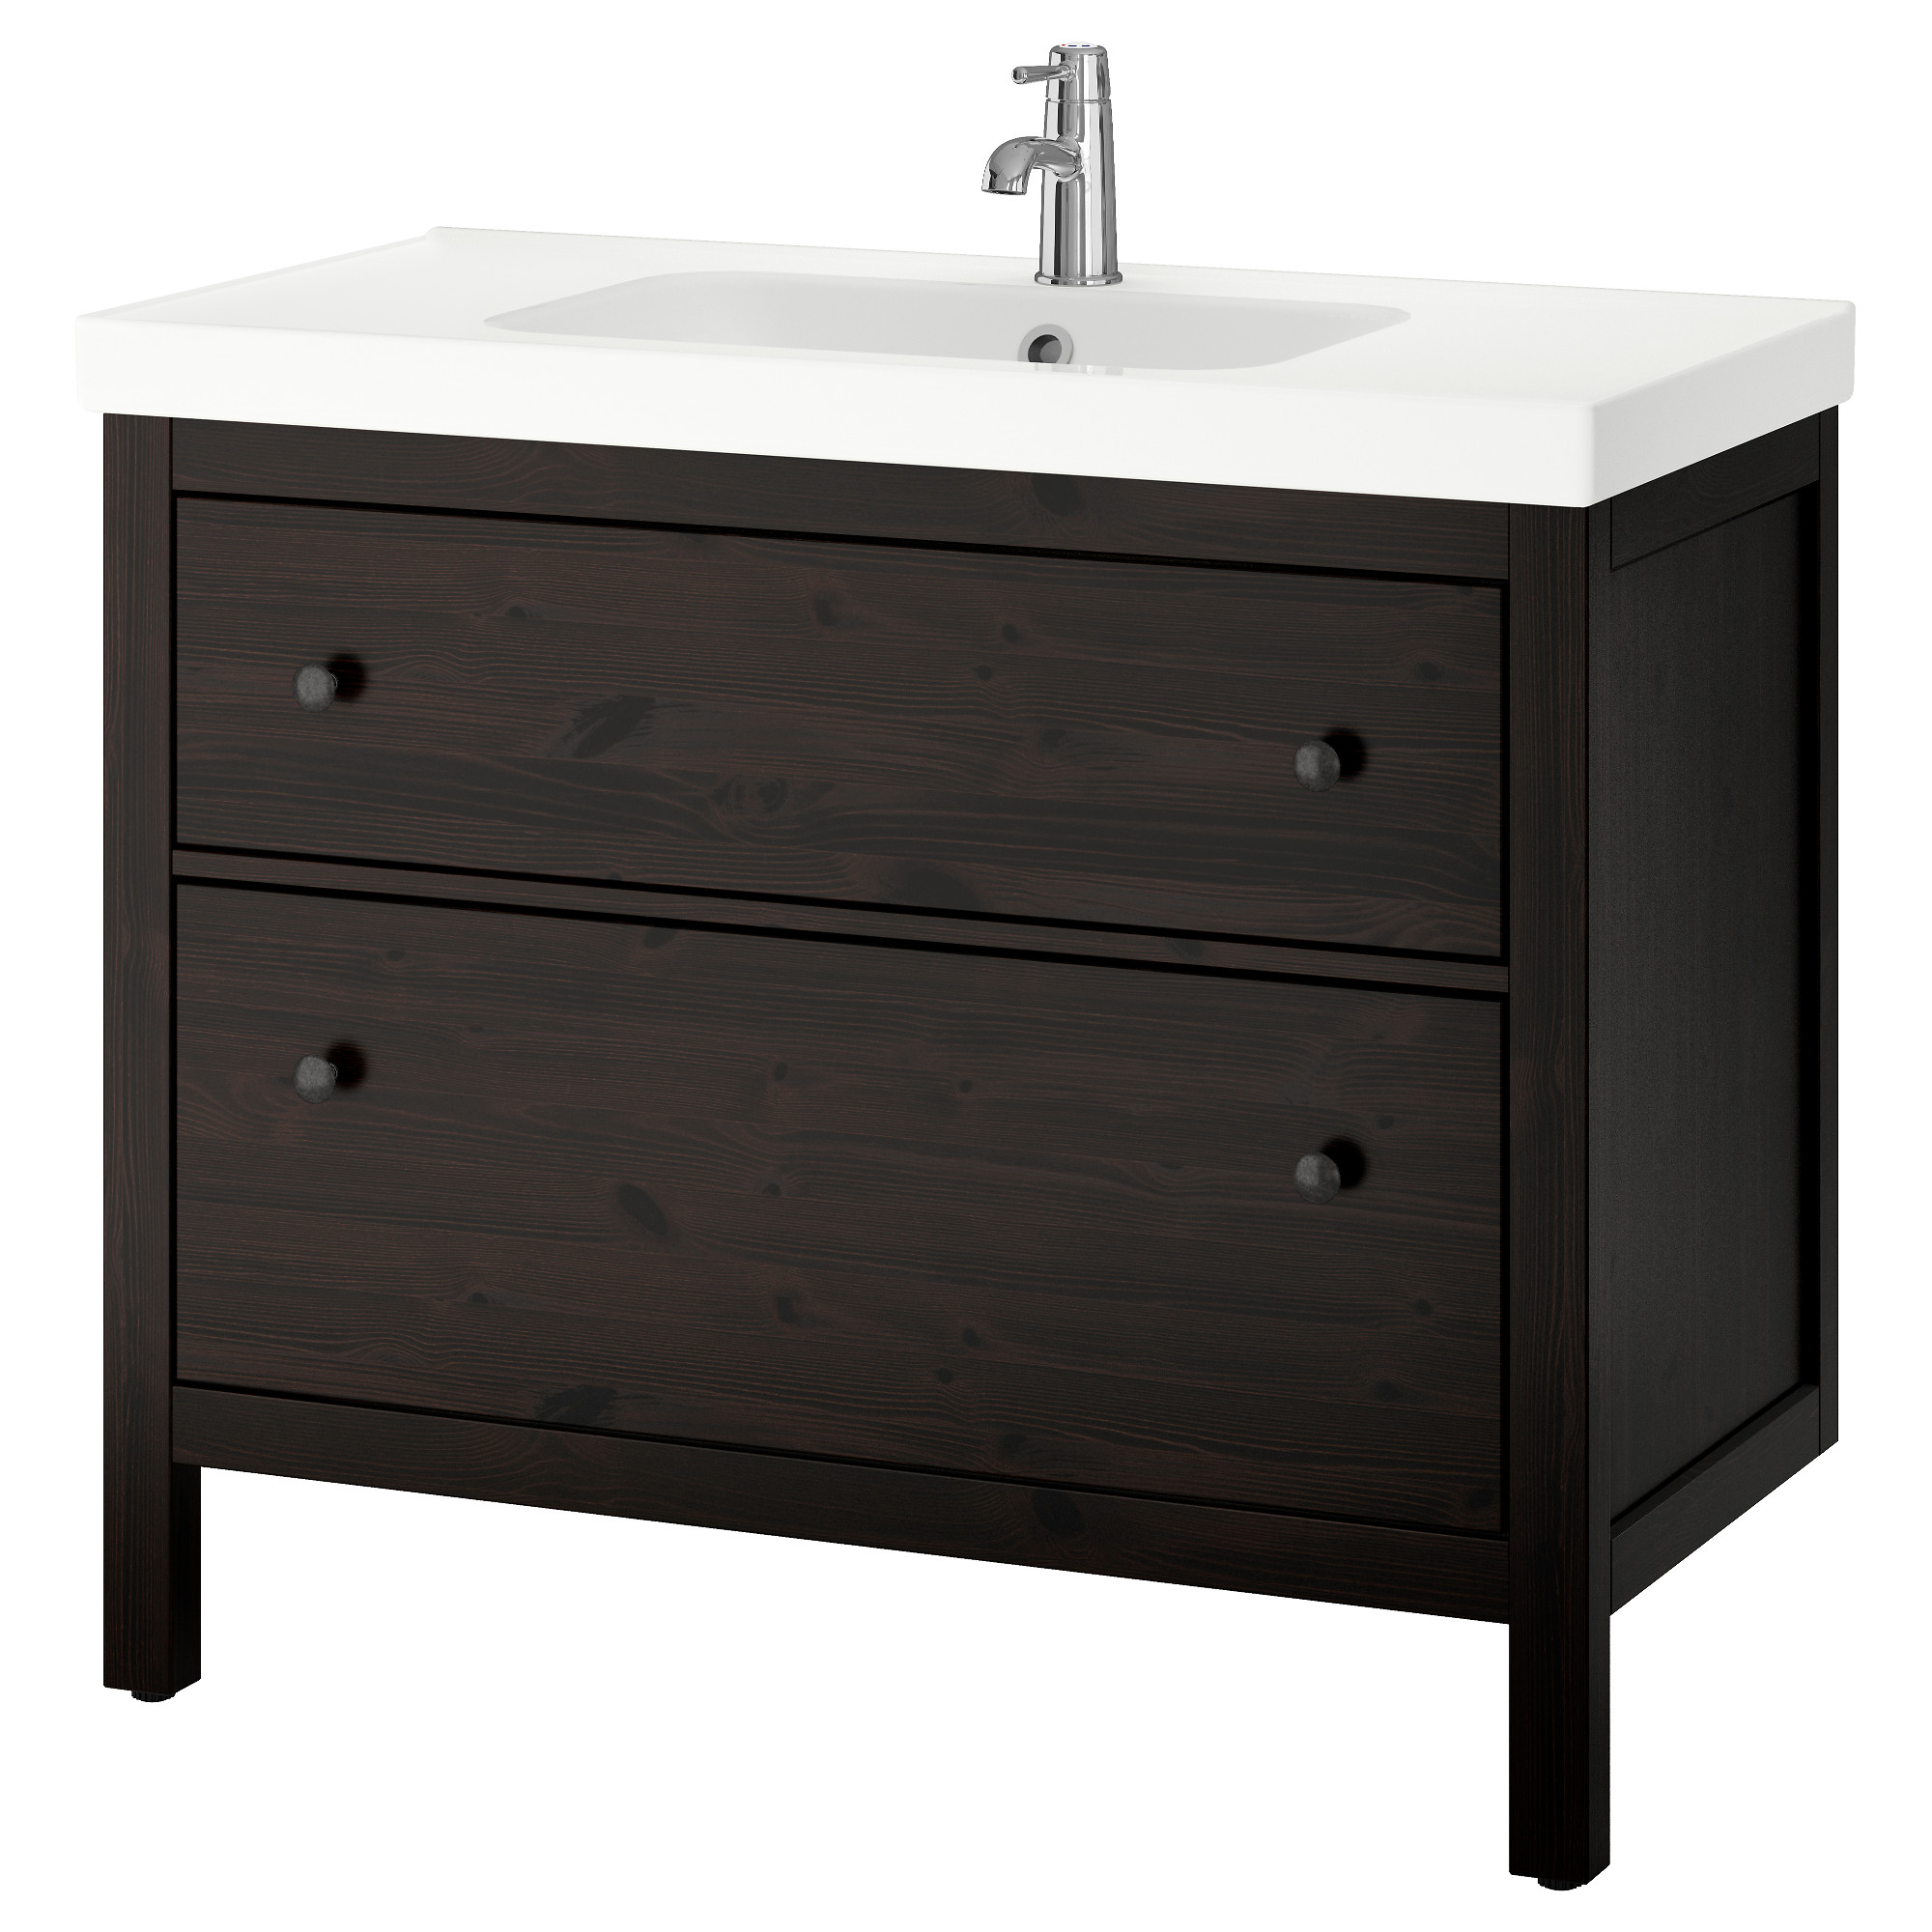 Bathroom Vanity With Sinks bathroom vanities & countertops - ikea